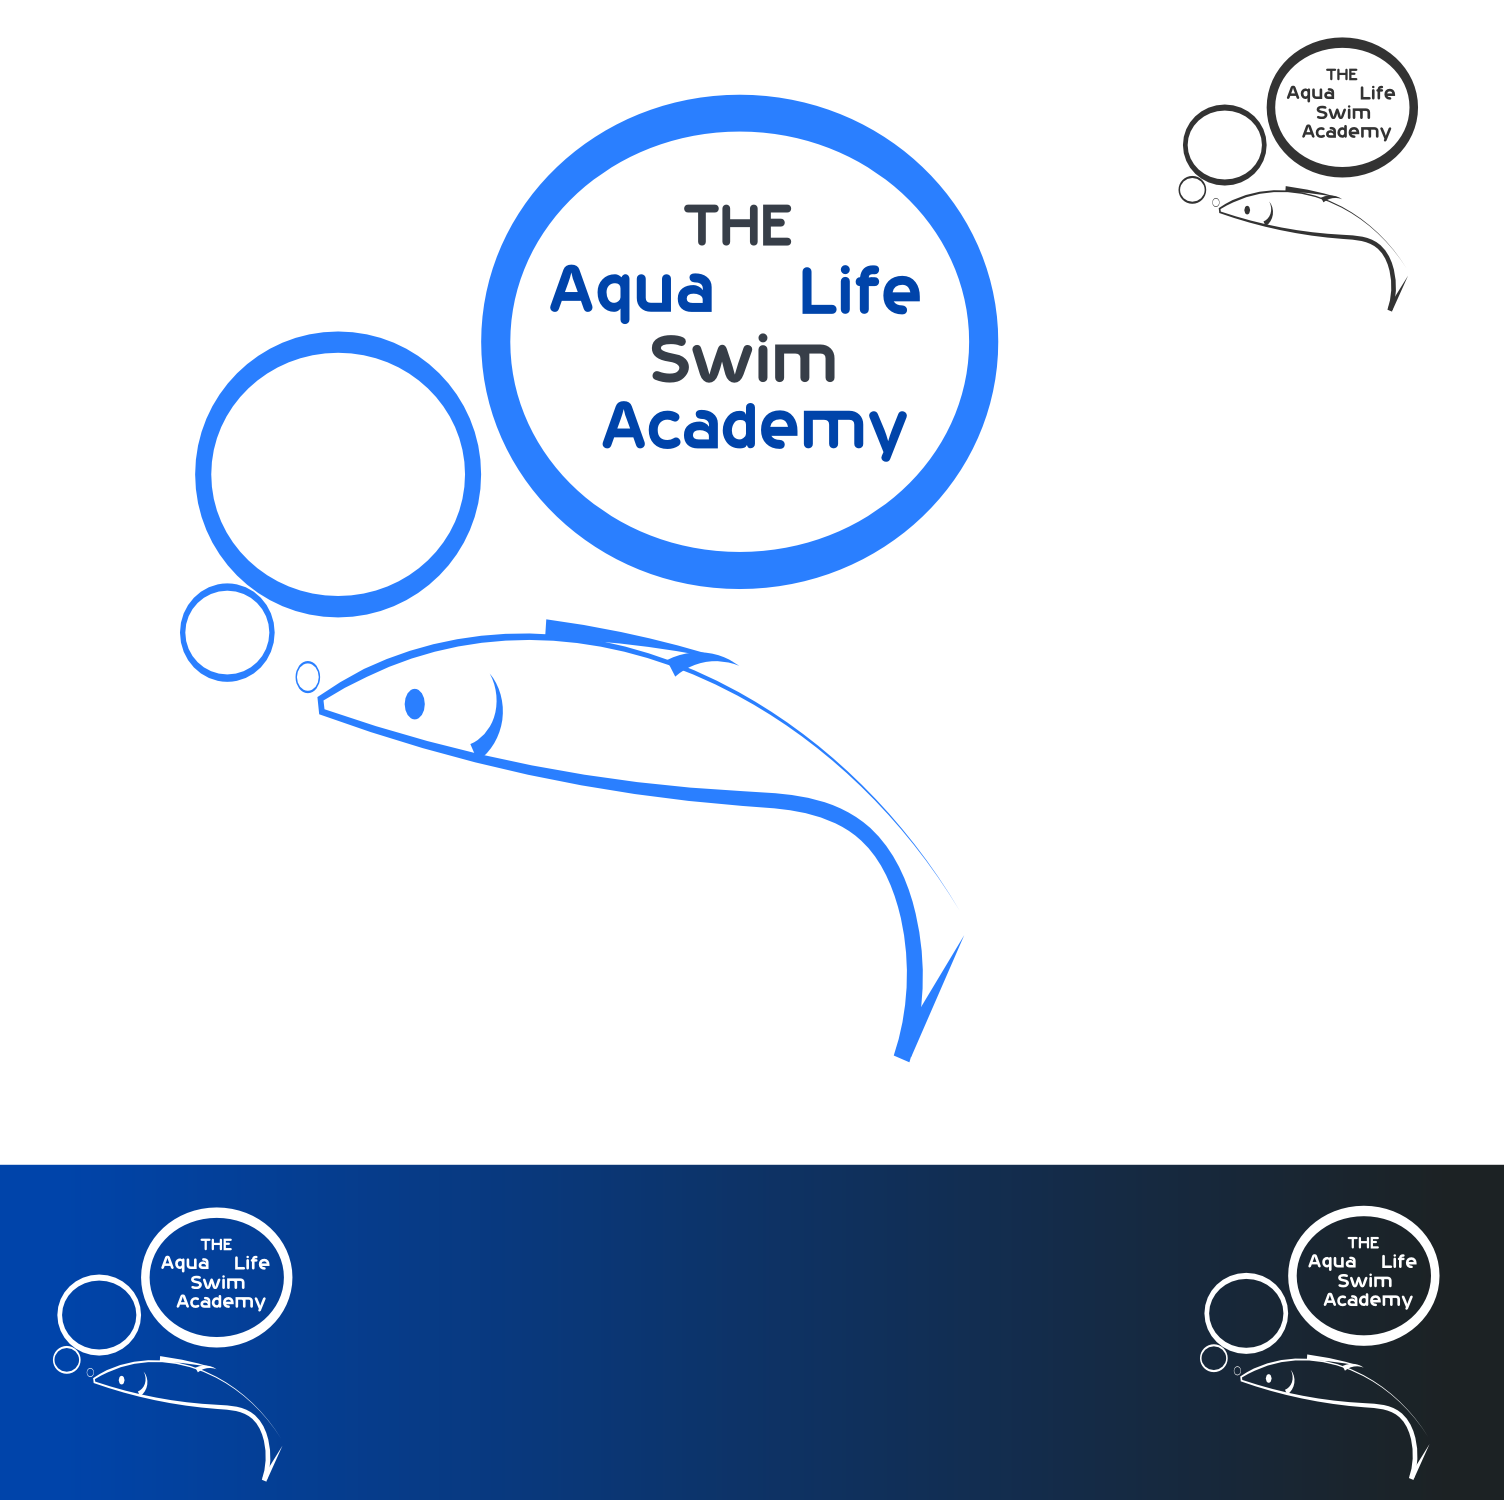 Logo Design by Arindam Khanda - Entry No. 71 in the Logo Design Contest Artistic Logo Design Wanted for The Aqua Life Swim Academy.